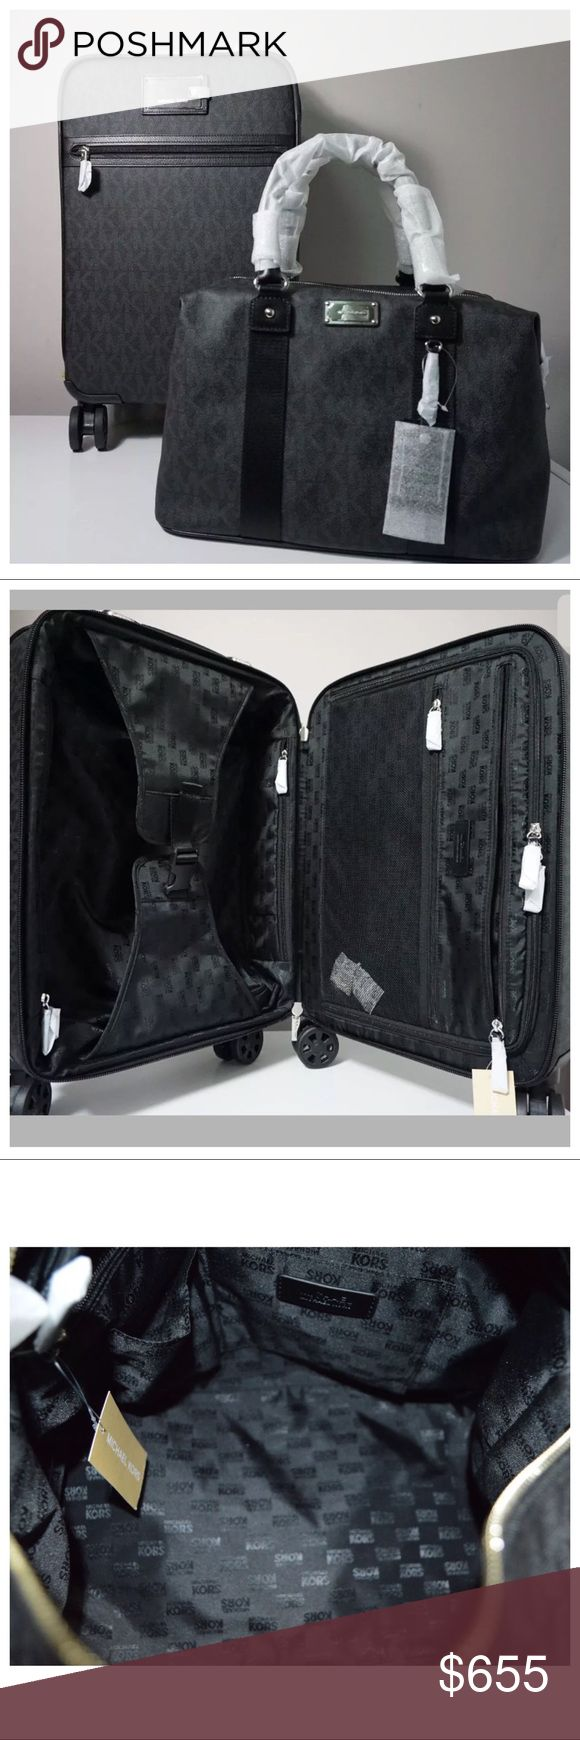 """NWT MK Travel Trolley Luggage & Large Weekender Brand new 100% Authentic  Travel Black Trolley Bag Luggage & Large Weekender Set Michael Kors MK Style No. 35T6GTFN4B ✨Retail price: $688 ✨Color: Black ✨PVC with leather trim ✨Handles at top and side ✨A telescope bar with push button backup ✨ID tag hangs from top ✨Front outside pocket ✨Inside, lined with three zip compartments; belted panels ✨keep items in place ✨Swivel wheels  ✨Telescope measurement height: 21"""" ✨Measurements: 13'' (L) x 19''…"""